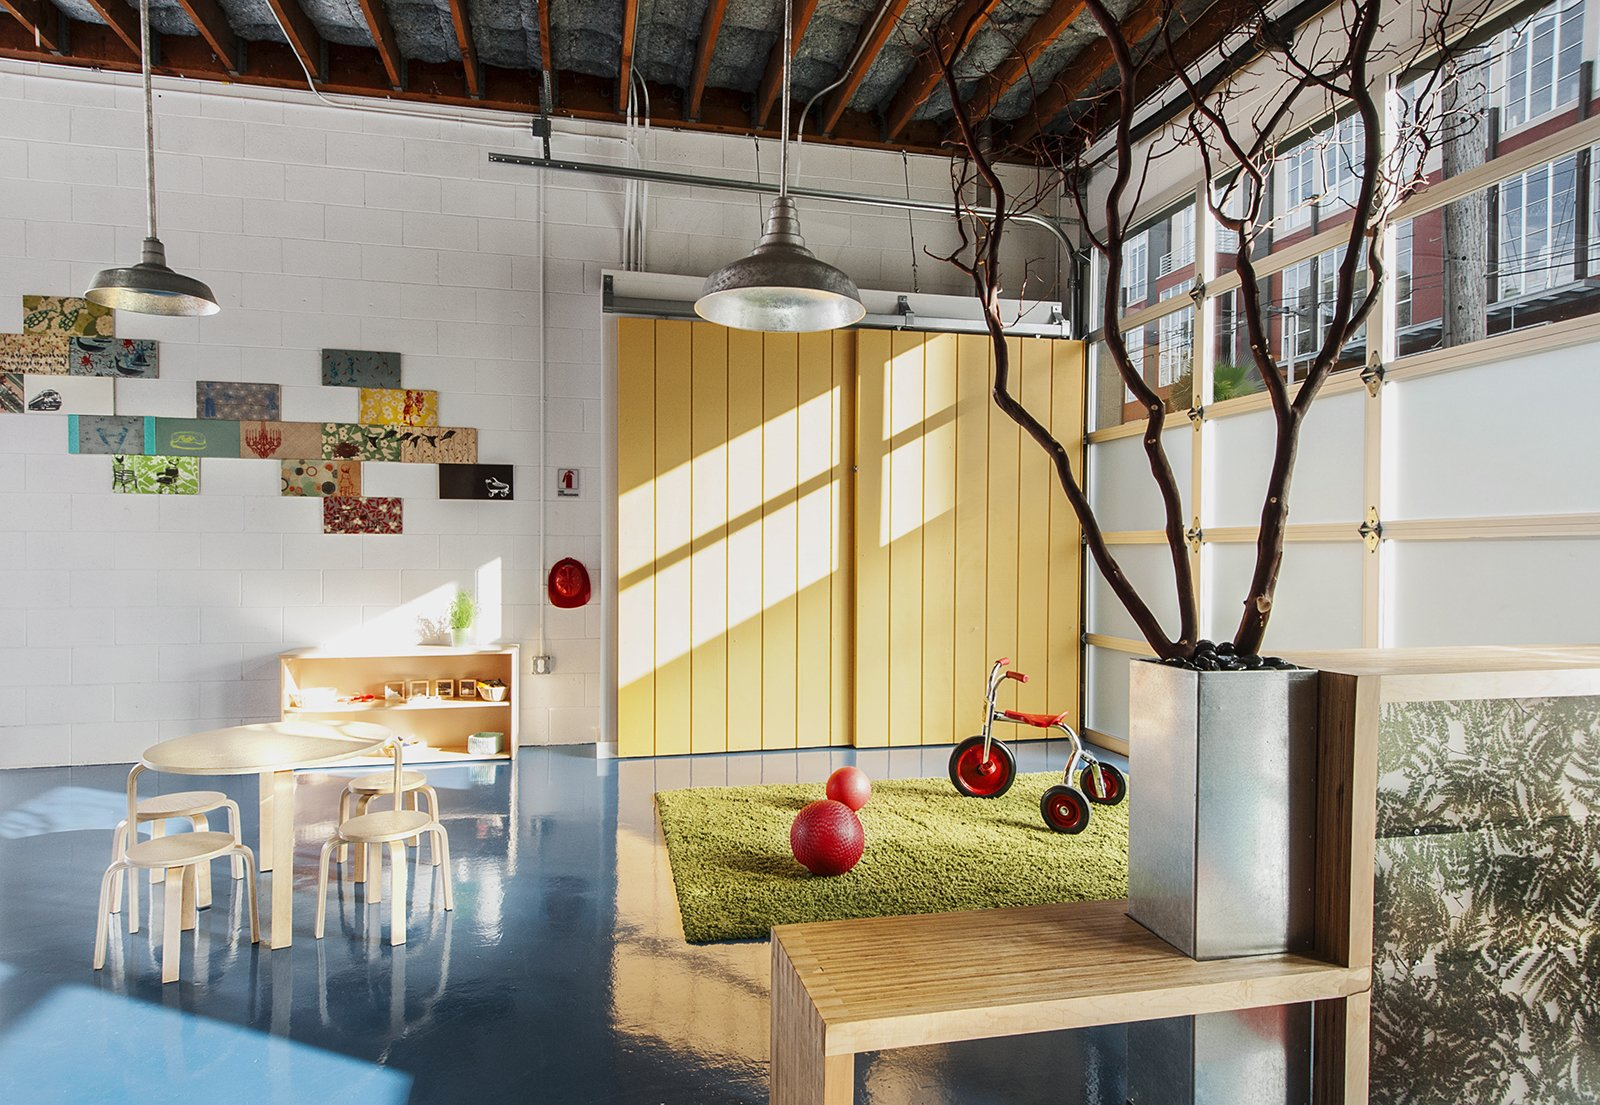 A Modern Preschool In San Francisco Collection Of 6 Photos By Diana Budds Dwell